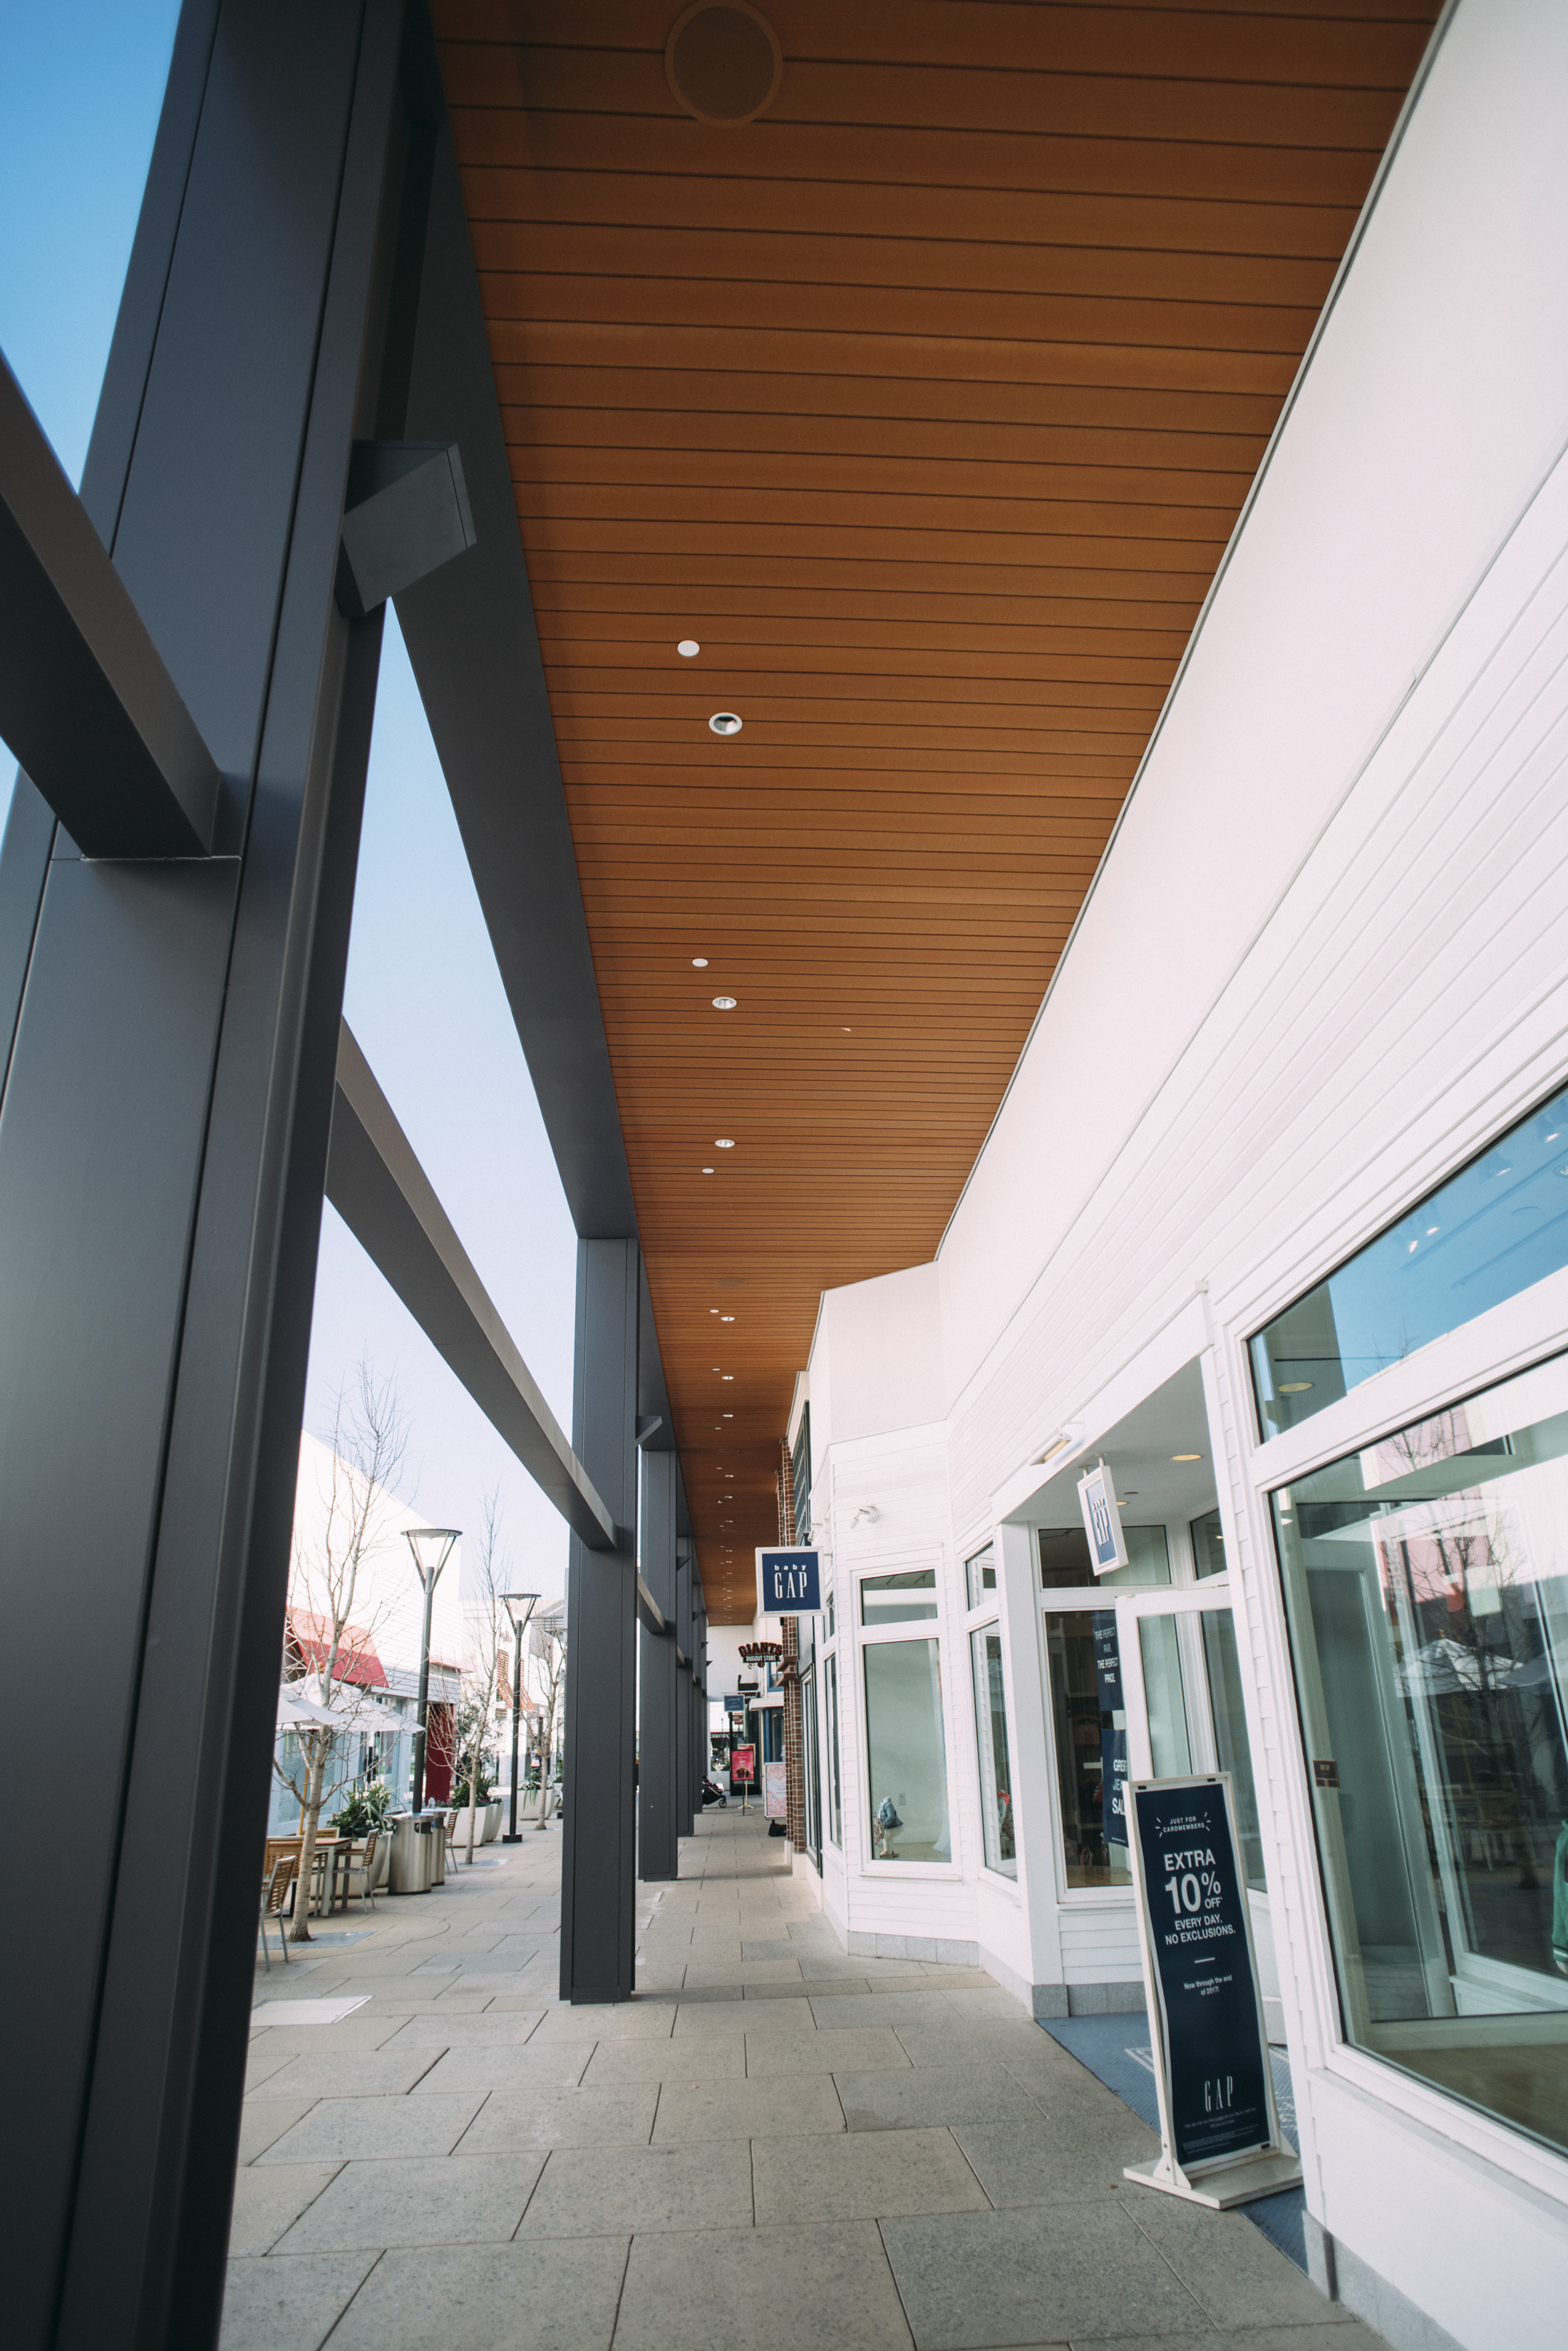 Image of Stanford Shopping Center